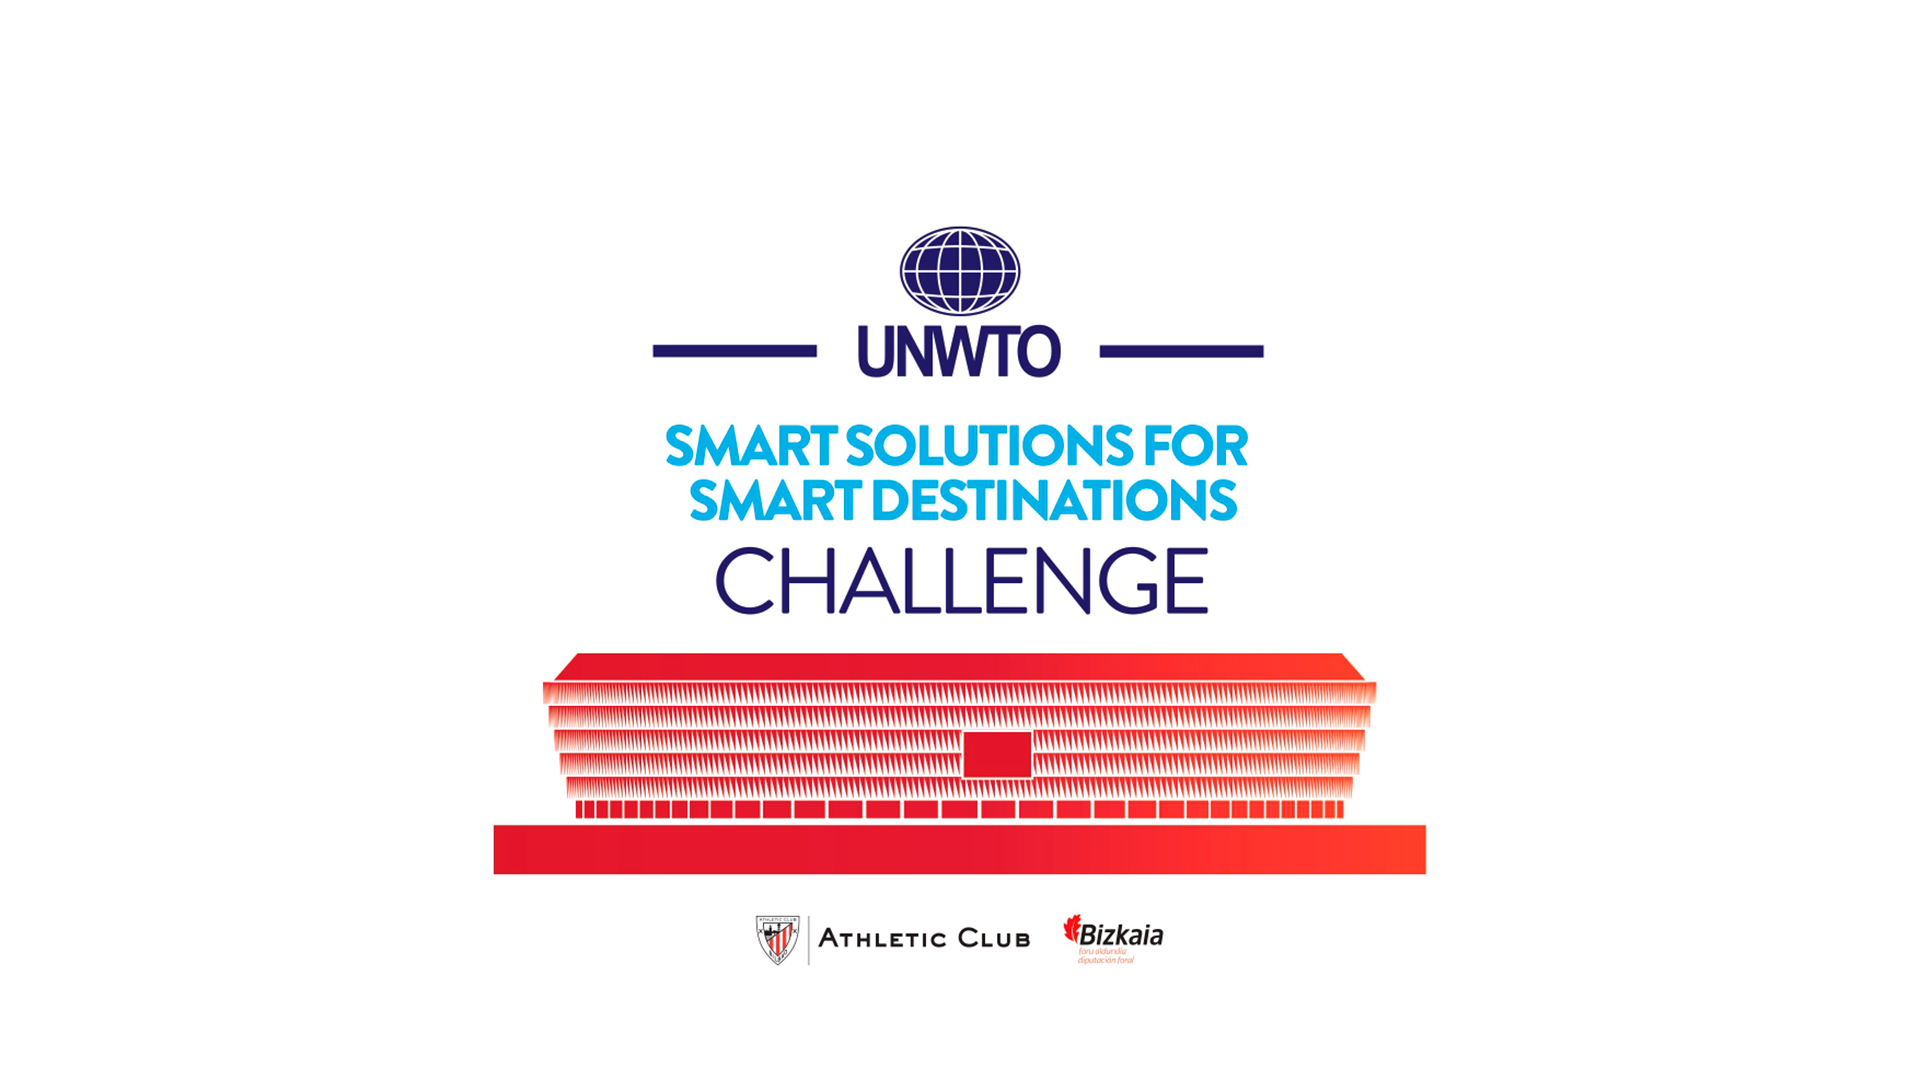 Casi 100 propuestas en la Smart Solutions for Smart Destinations Challenge